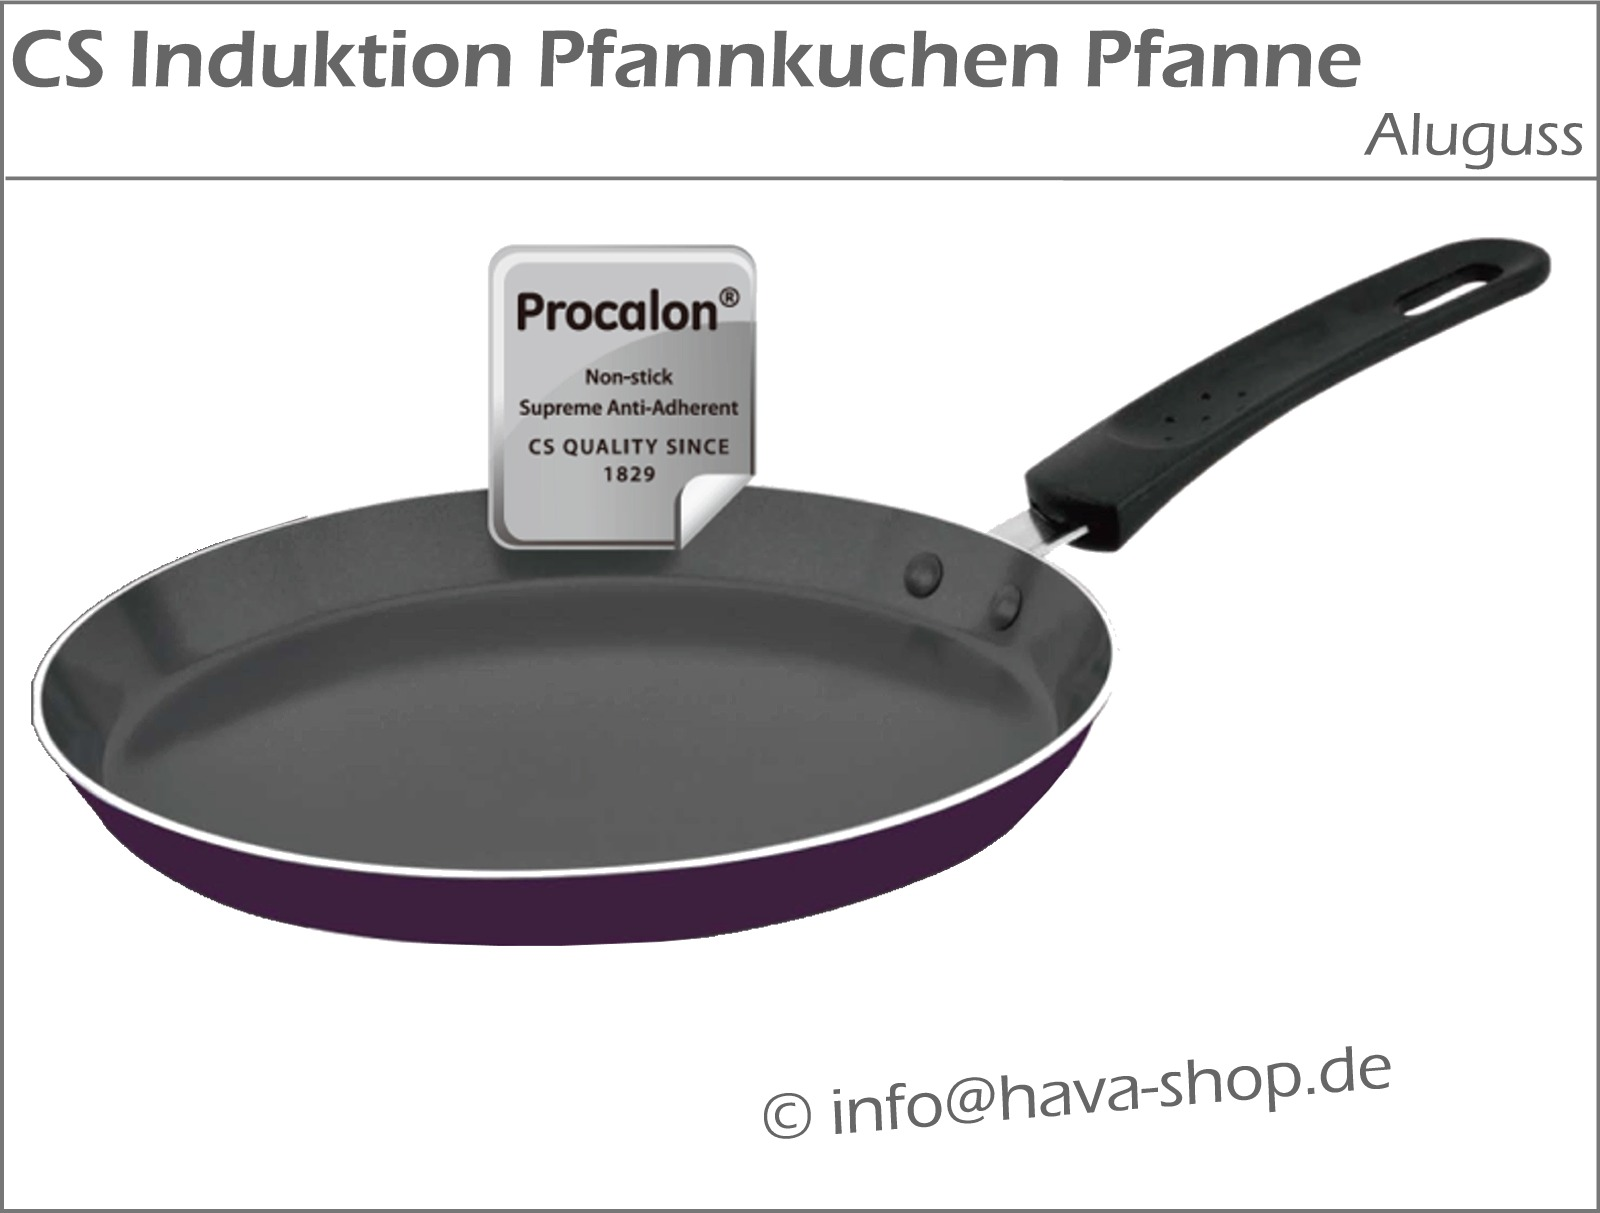 antihaft induktion pfannkuchen pfanne aluguss edelstahl 24 cm pancake maker pan ebay. Black Bedroom Furniture Sets. Home Design Ideas